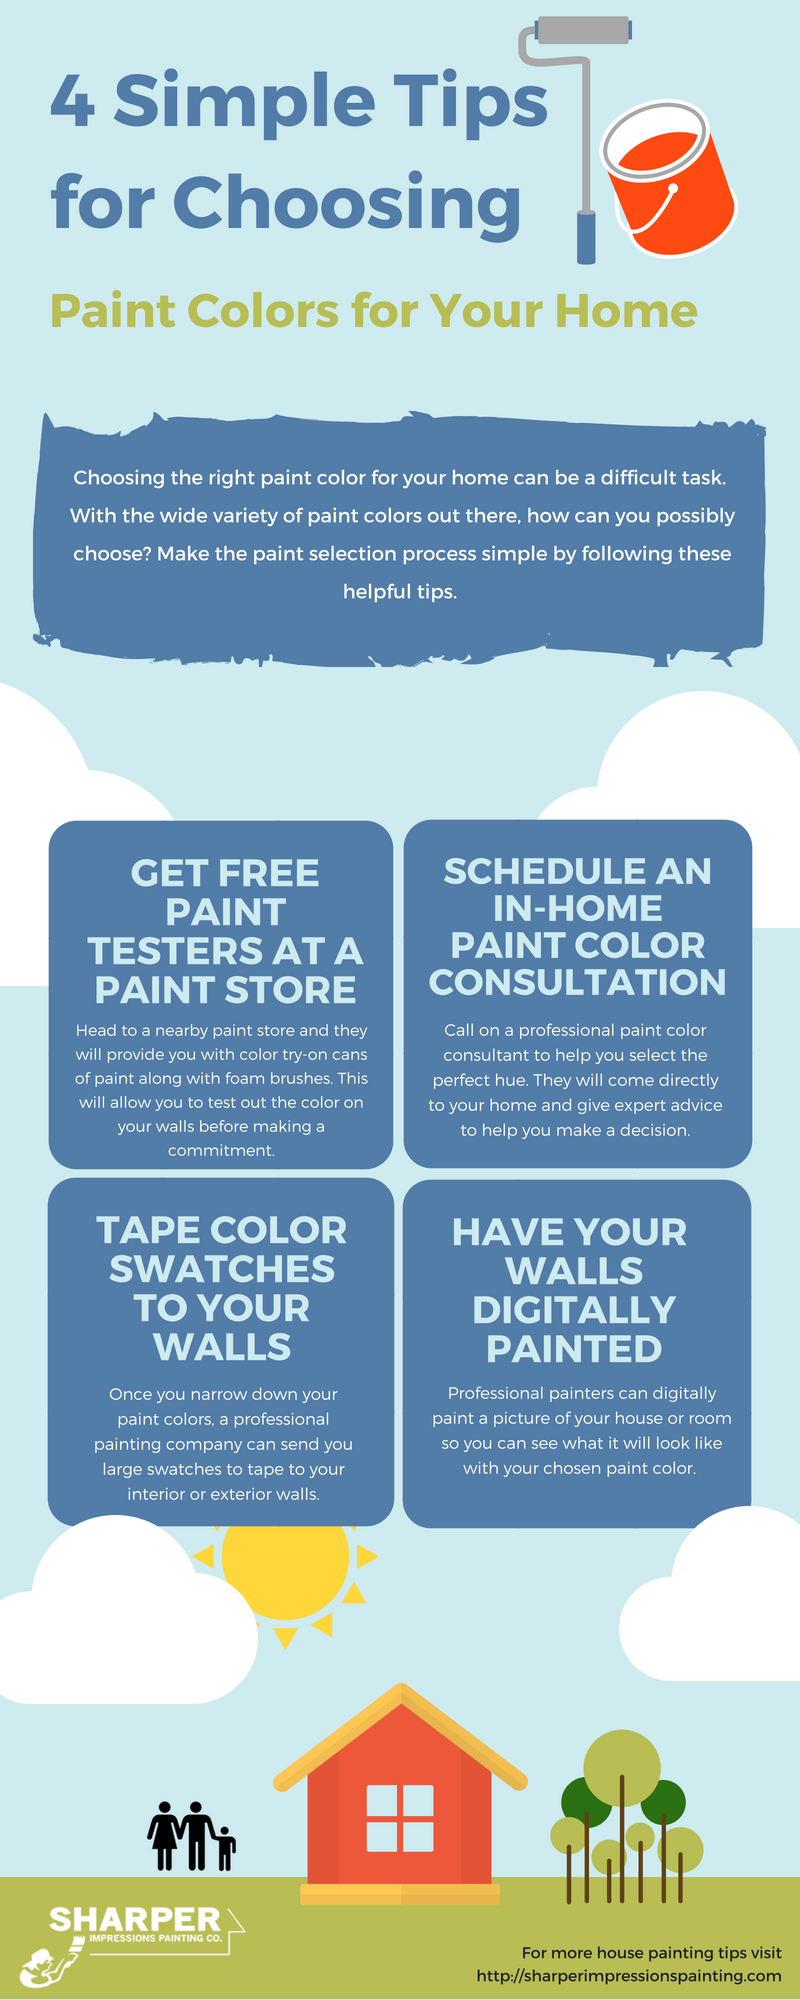 4 simple tips for choosing paint colors for your home infographic